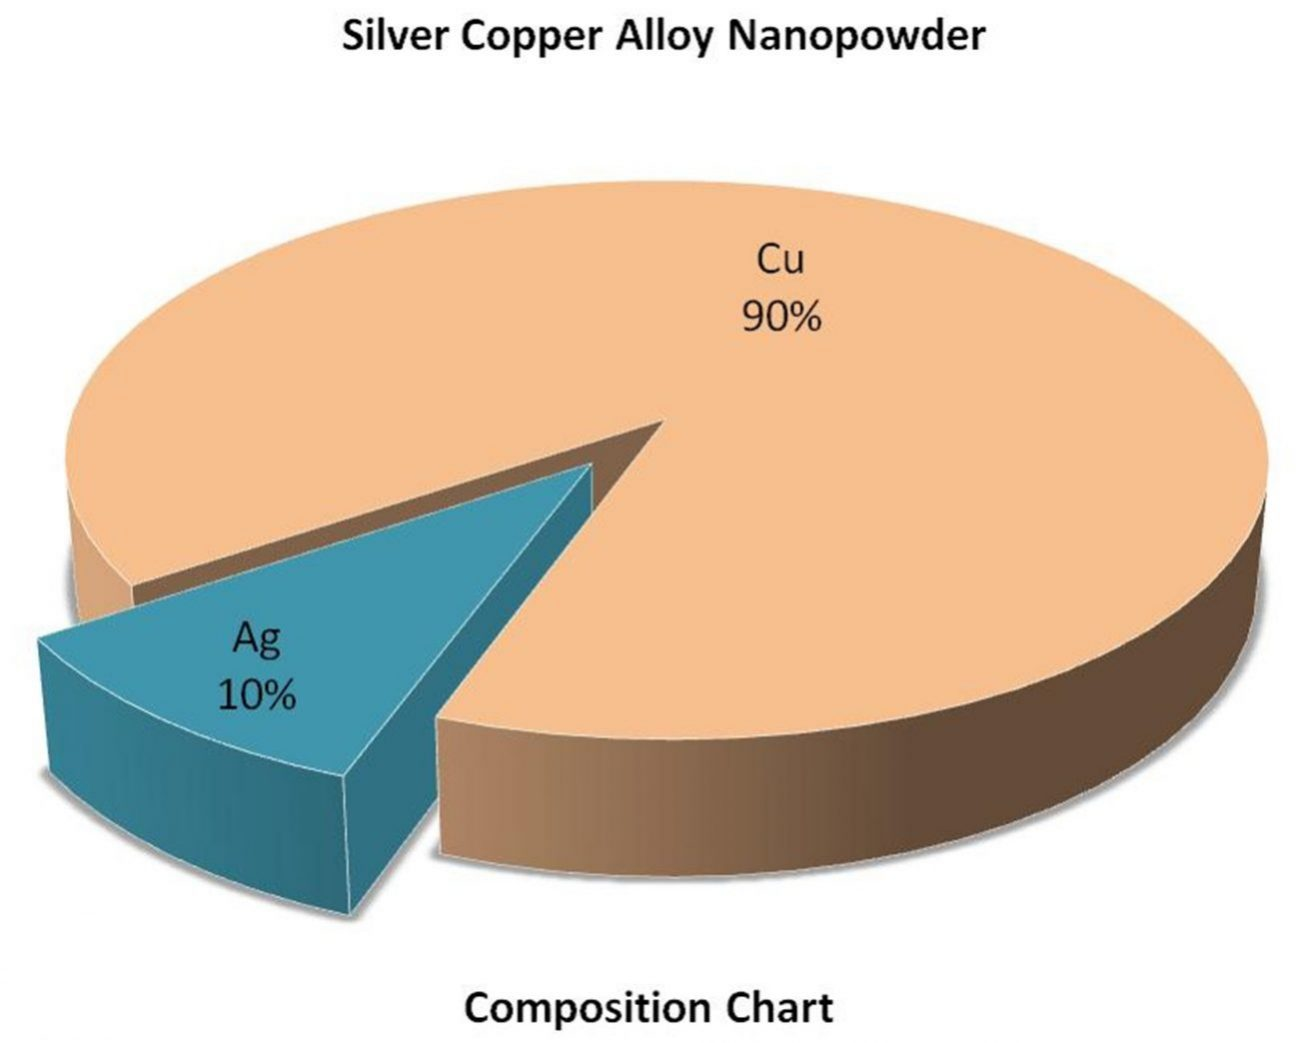 Composition Chart - Ag:Cu Alloy Nanopoarticles